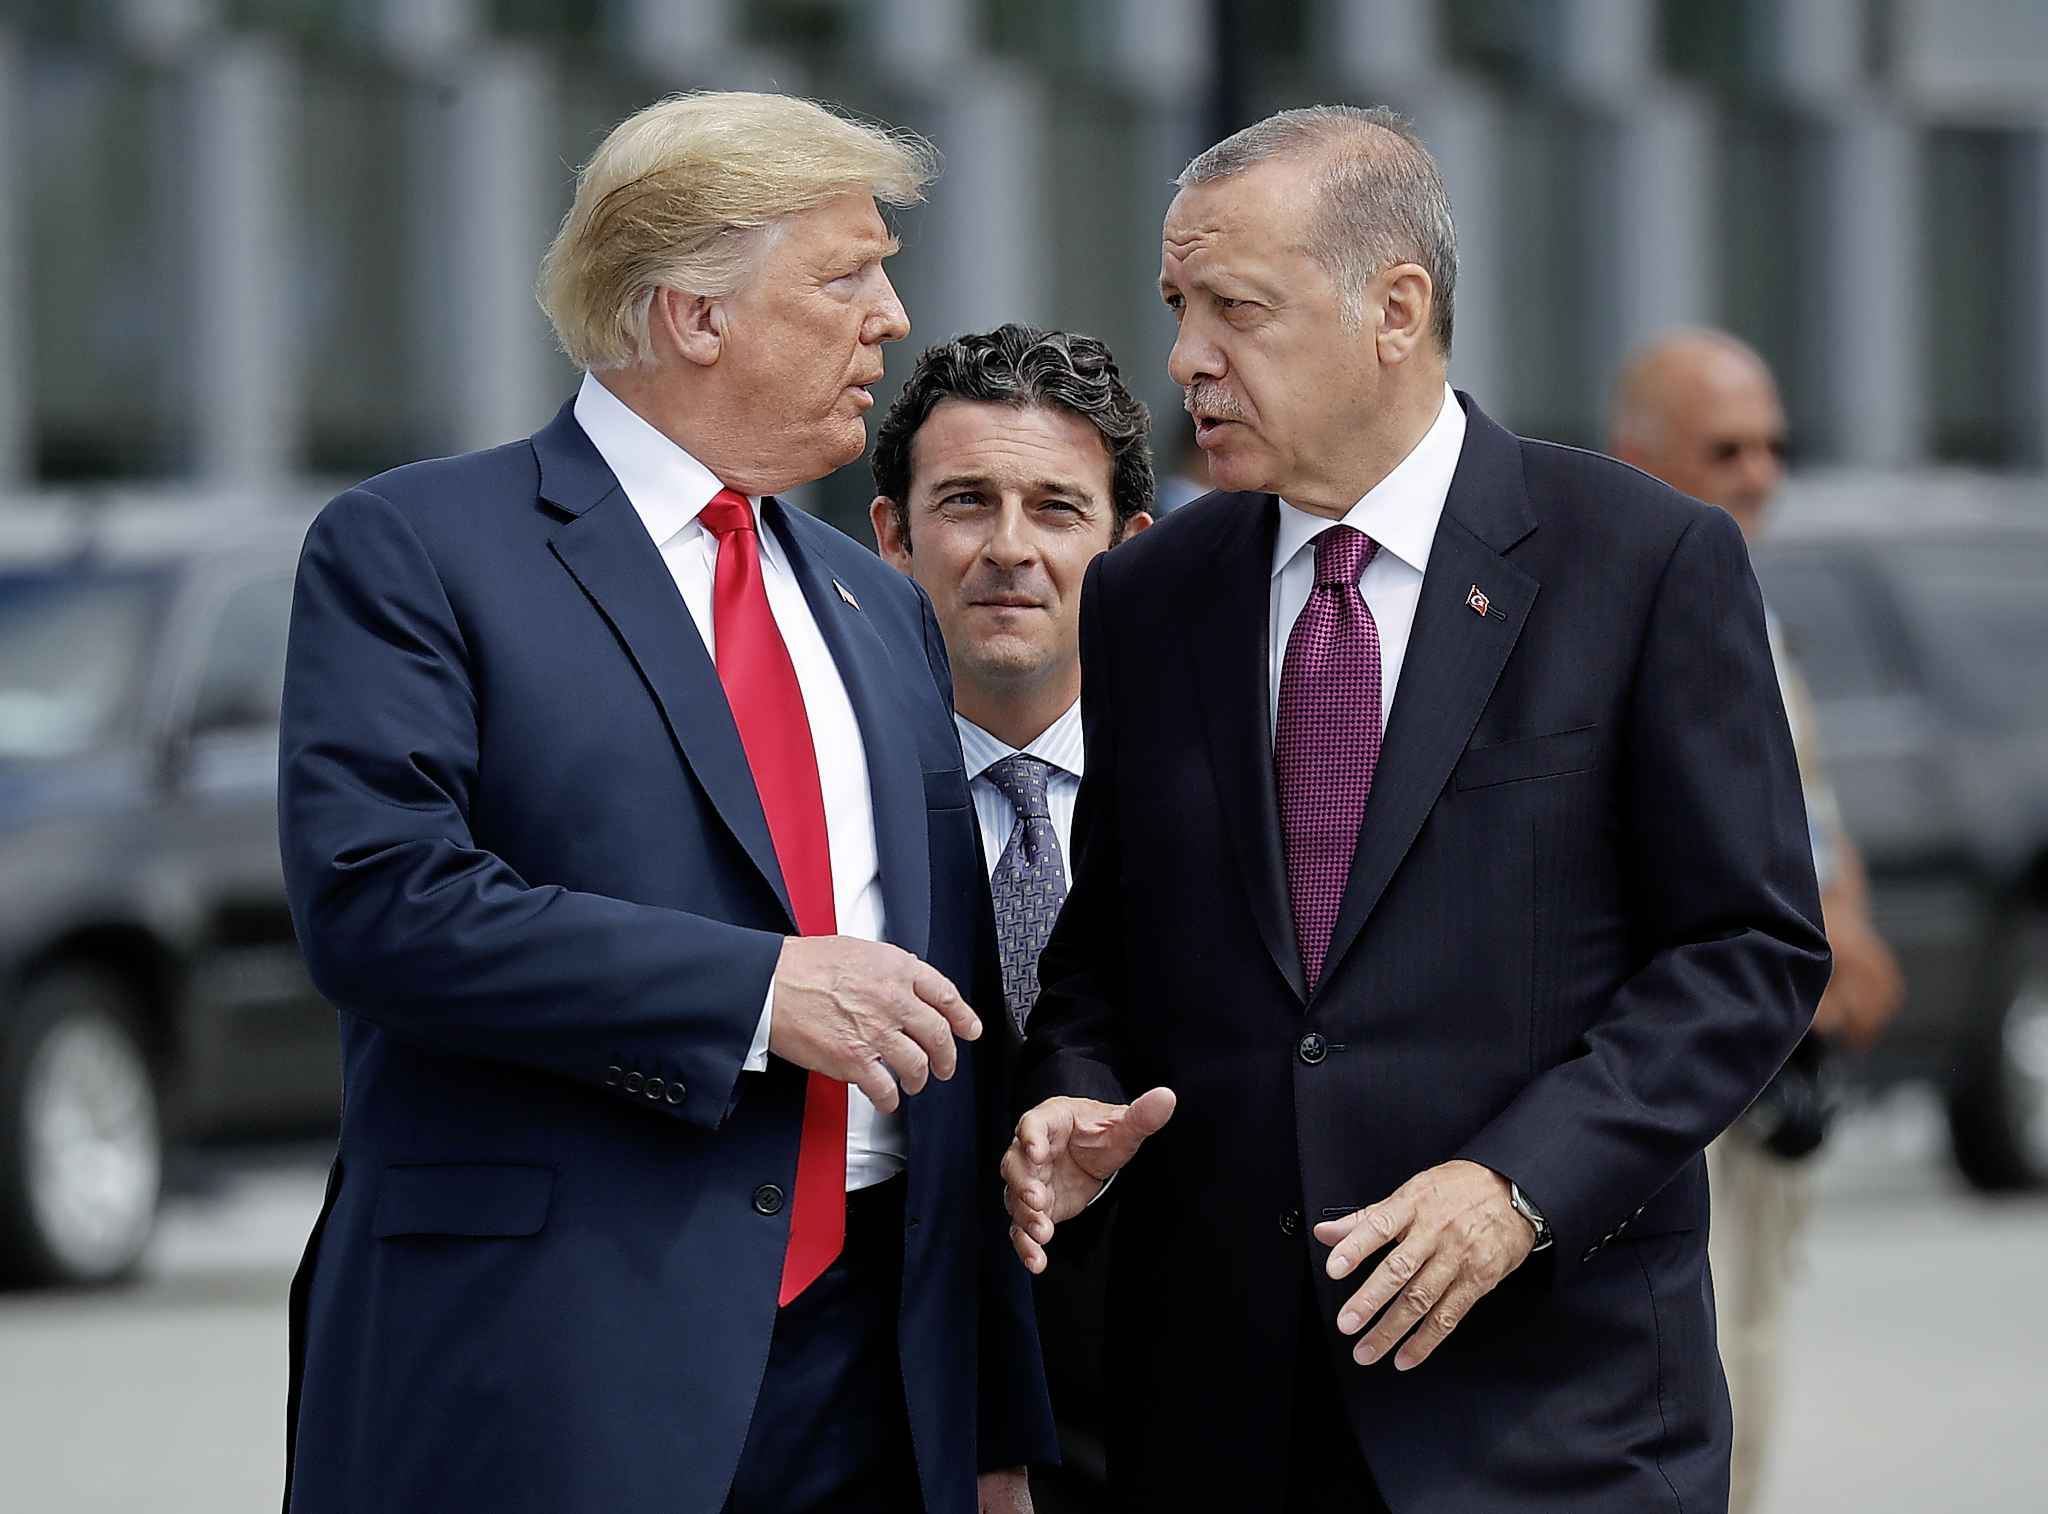 """Donald Trump (left) announced the U.S. forces pullout, hours after going """"off script"""" during a telephone conversation with Turkish President Recep Tayyip Erdogan. (Pablo Martinez Monsivais / Associated Press files)"""